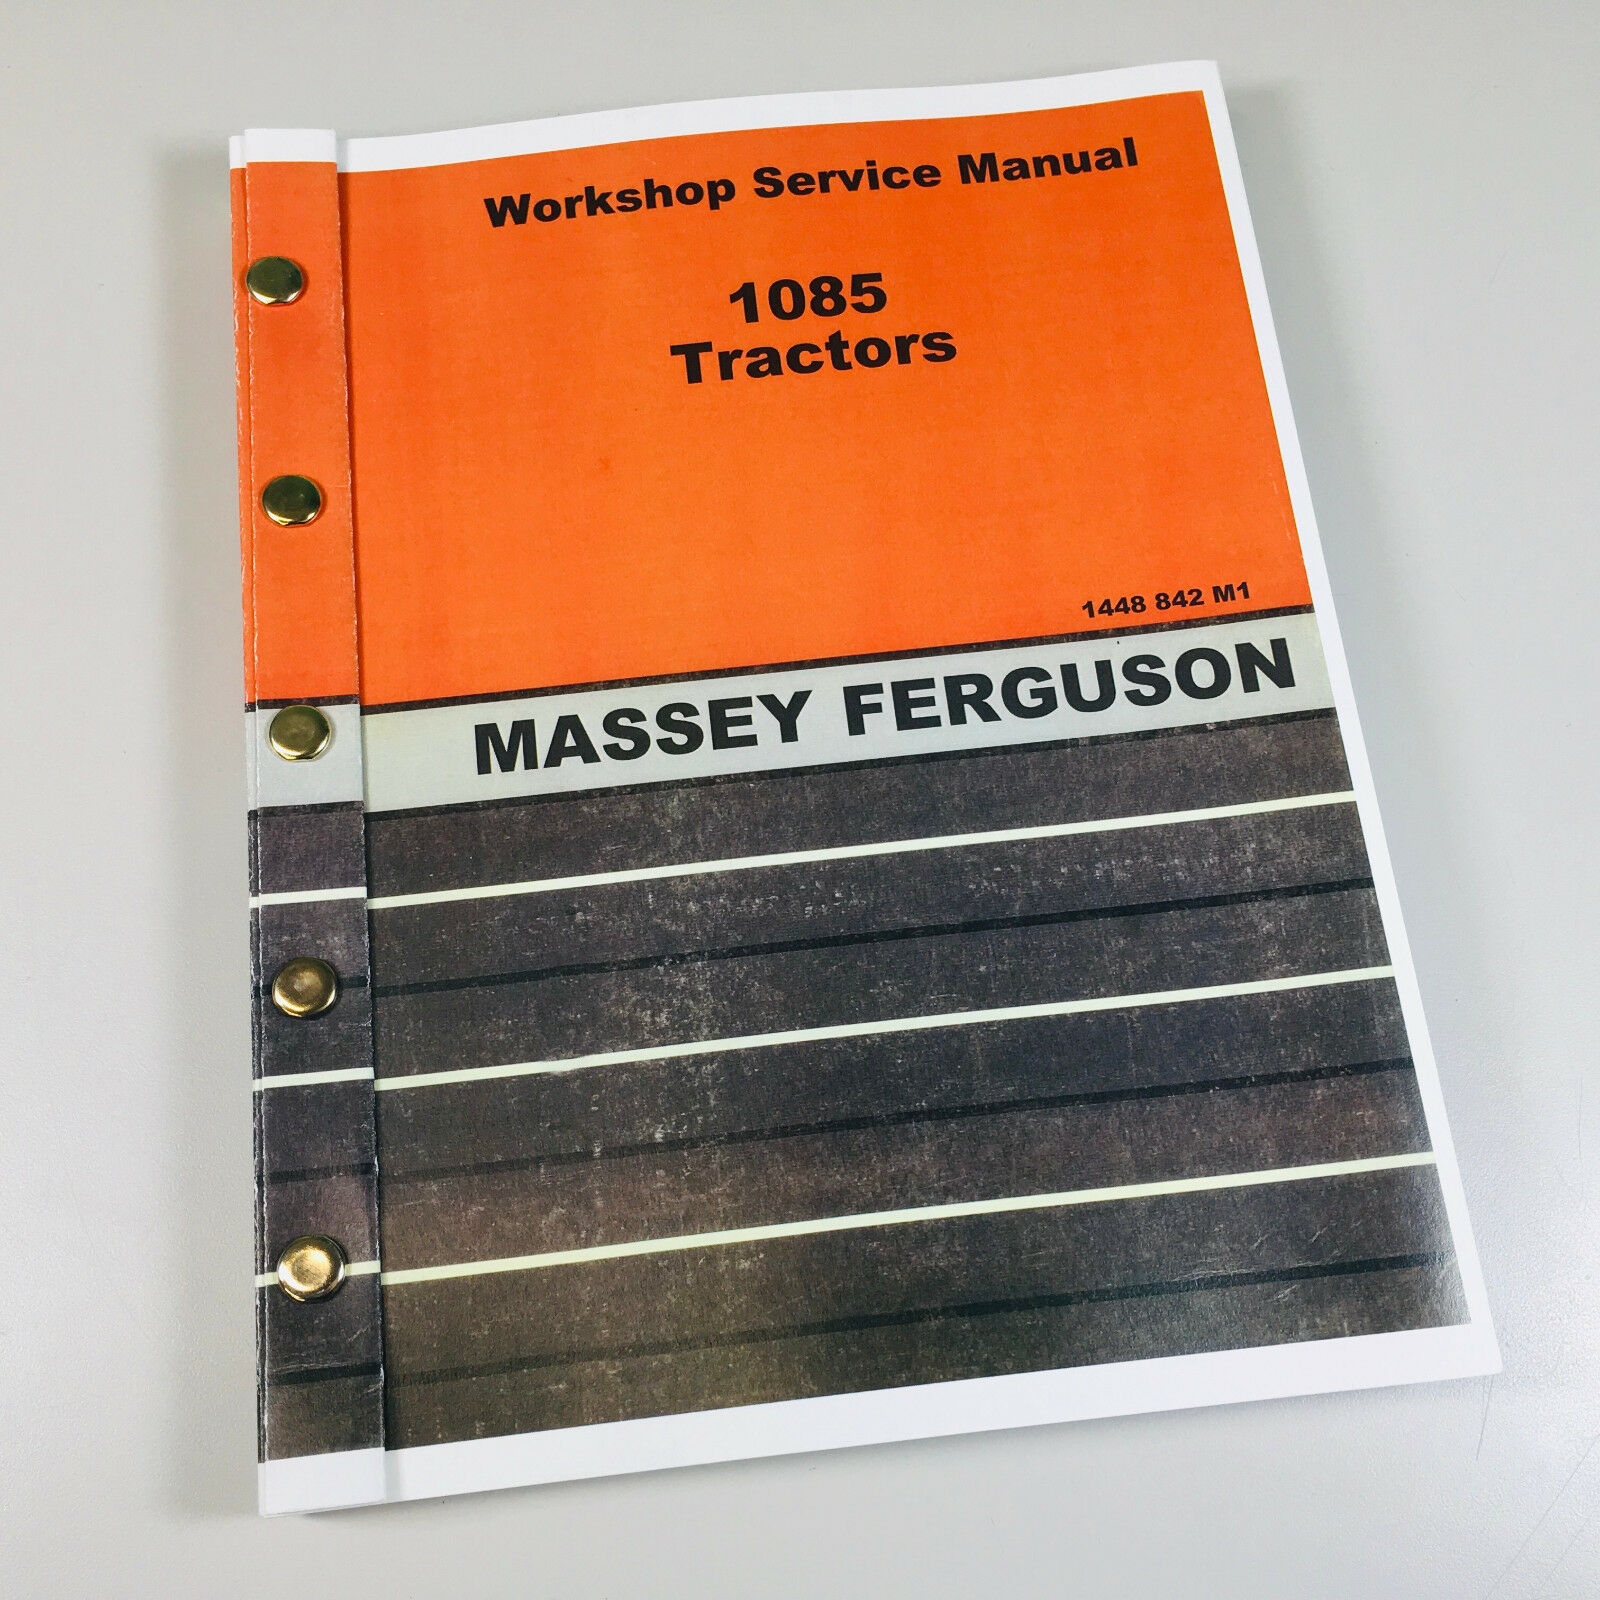 Massey Ferguson 1085 Tractor Service Manual. 290+ pages.....Thick,  comprehensive manual.....Most complete and up-to-date original equipment  manufacturers ...